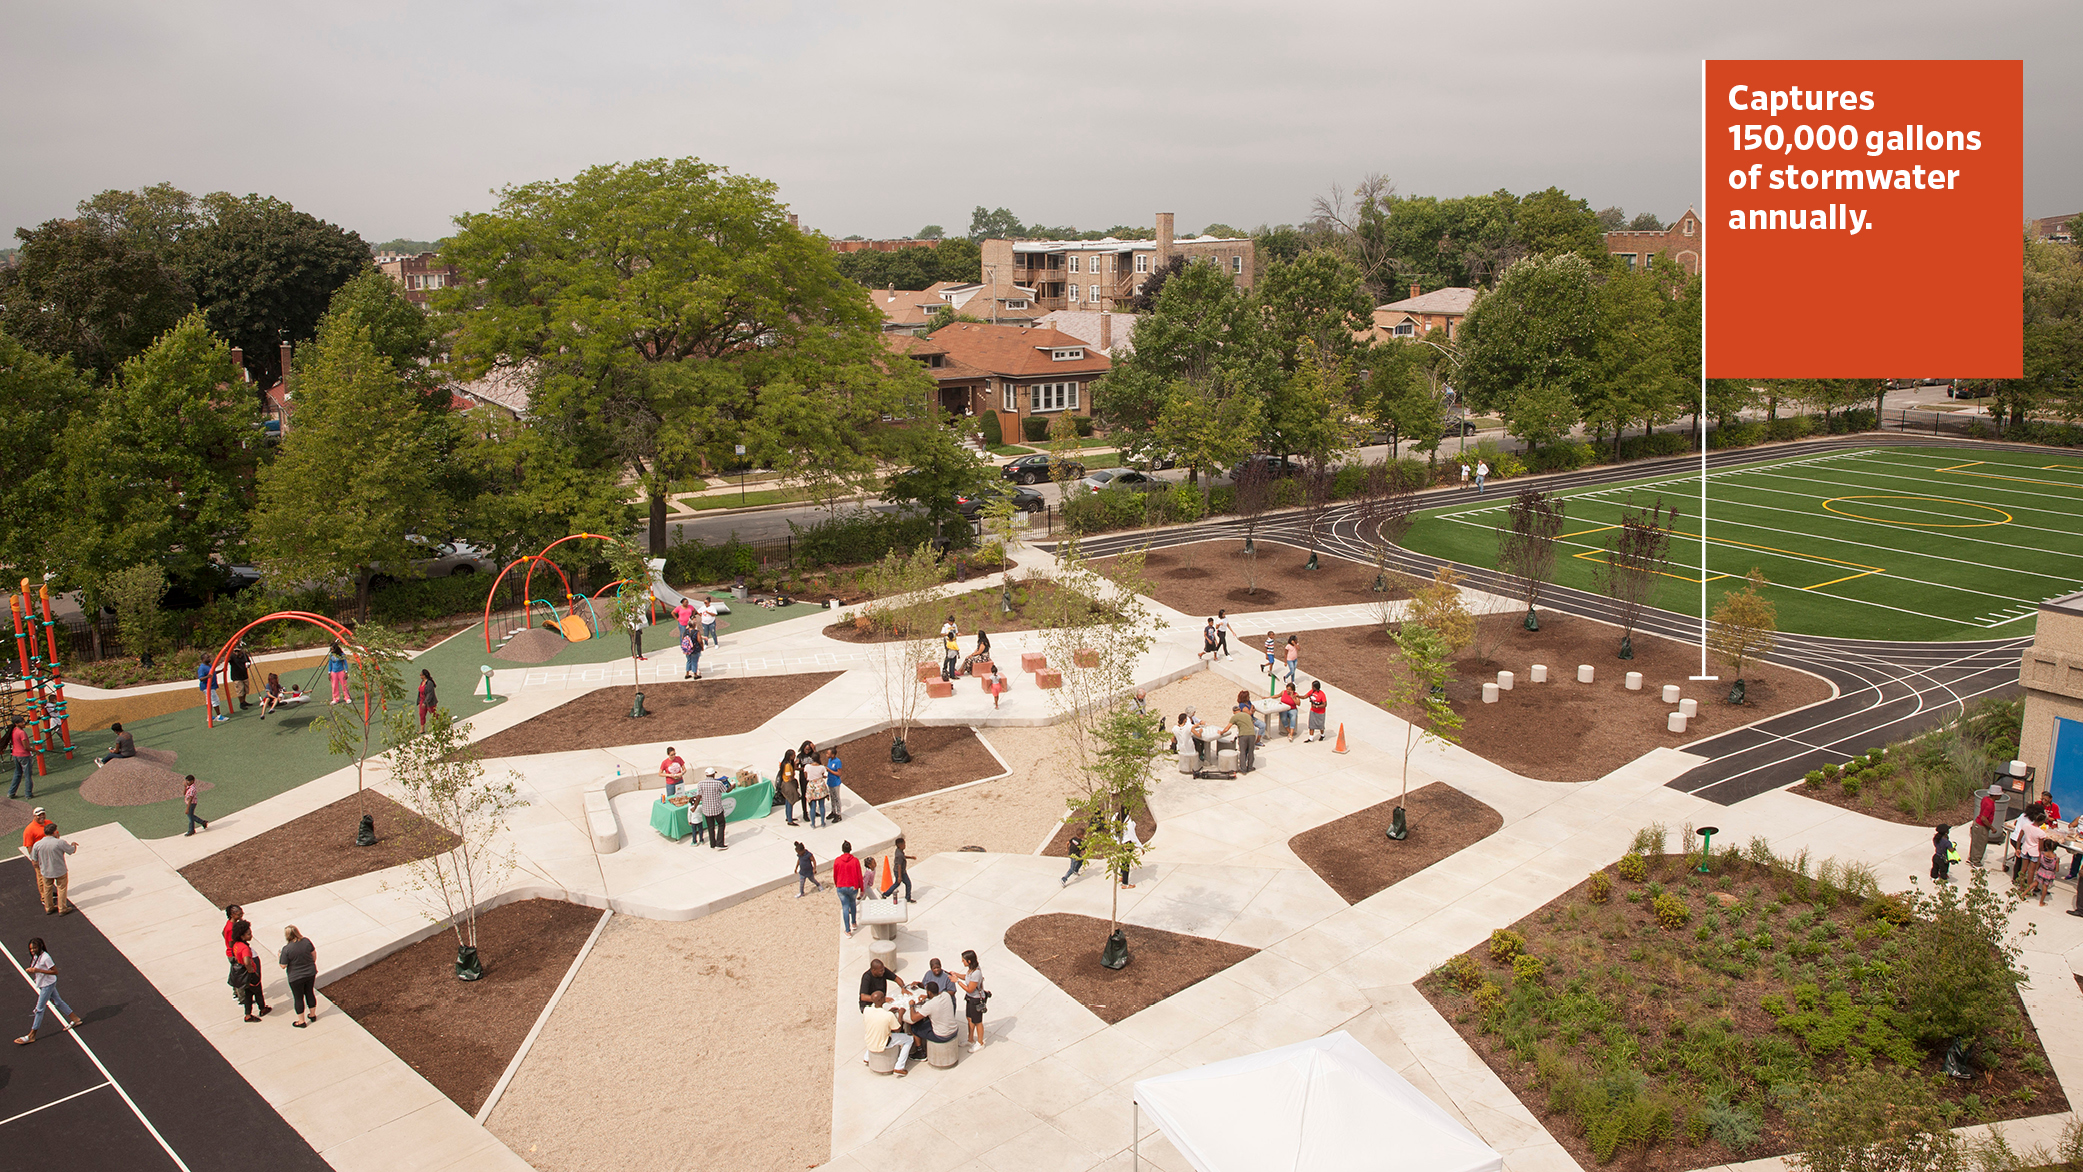 An aerial view of the John W. Cook Academy Space to Grow Schoolyard in Chicago, with gardens in the foreground and sports fields and a play ground in the background.